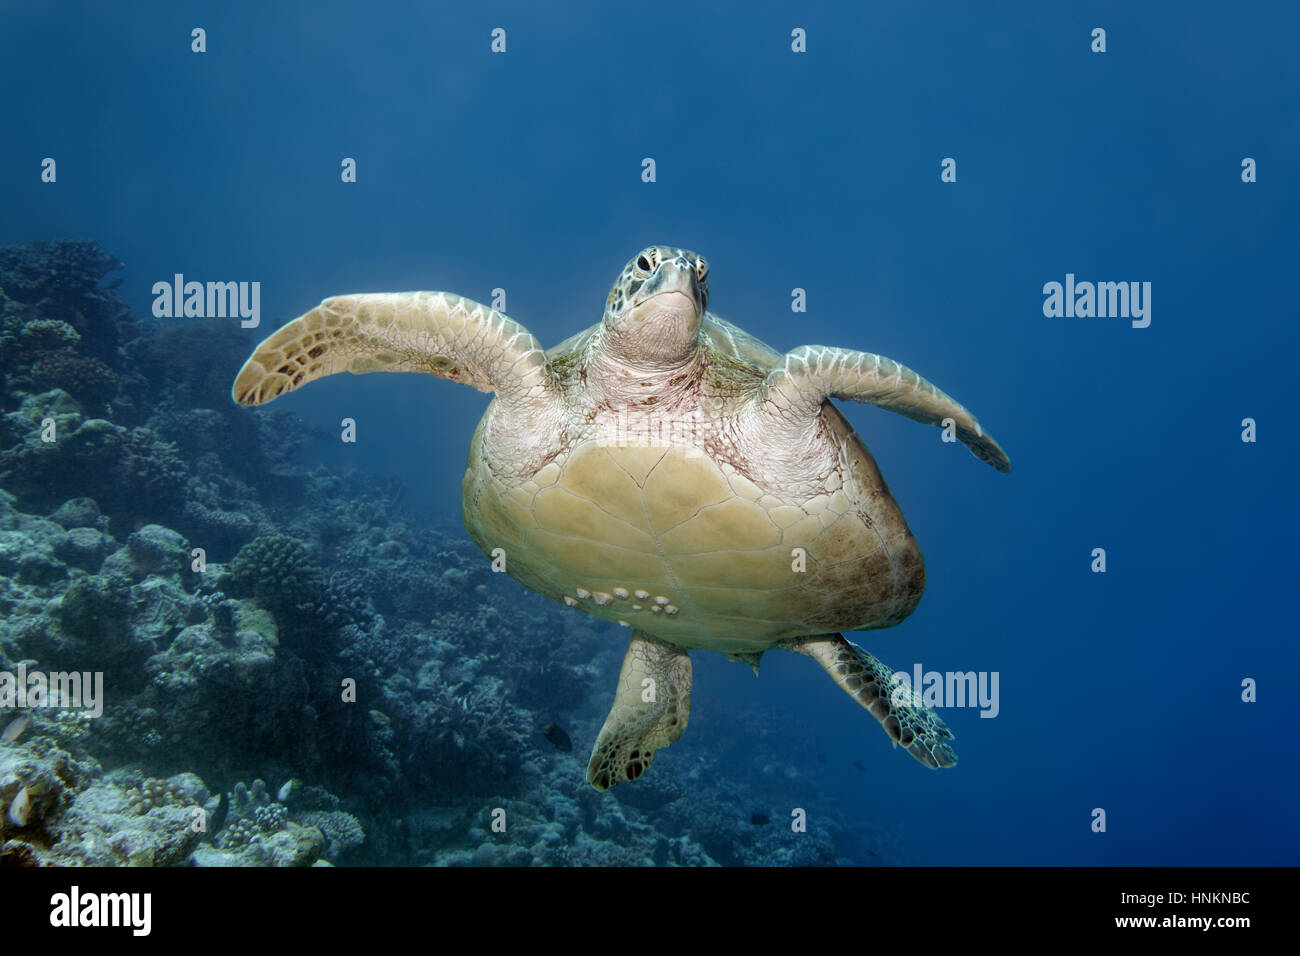 Green turtle (Chelonia mydas) with barnacles (Balanidae) swimming over coral reef, Indian Ocean, Maldives Stock Photo